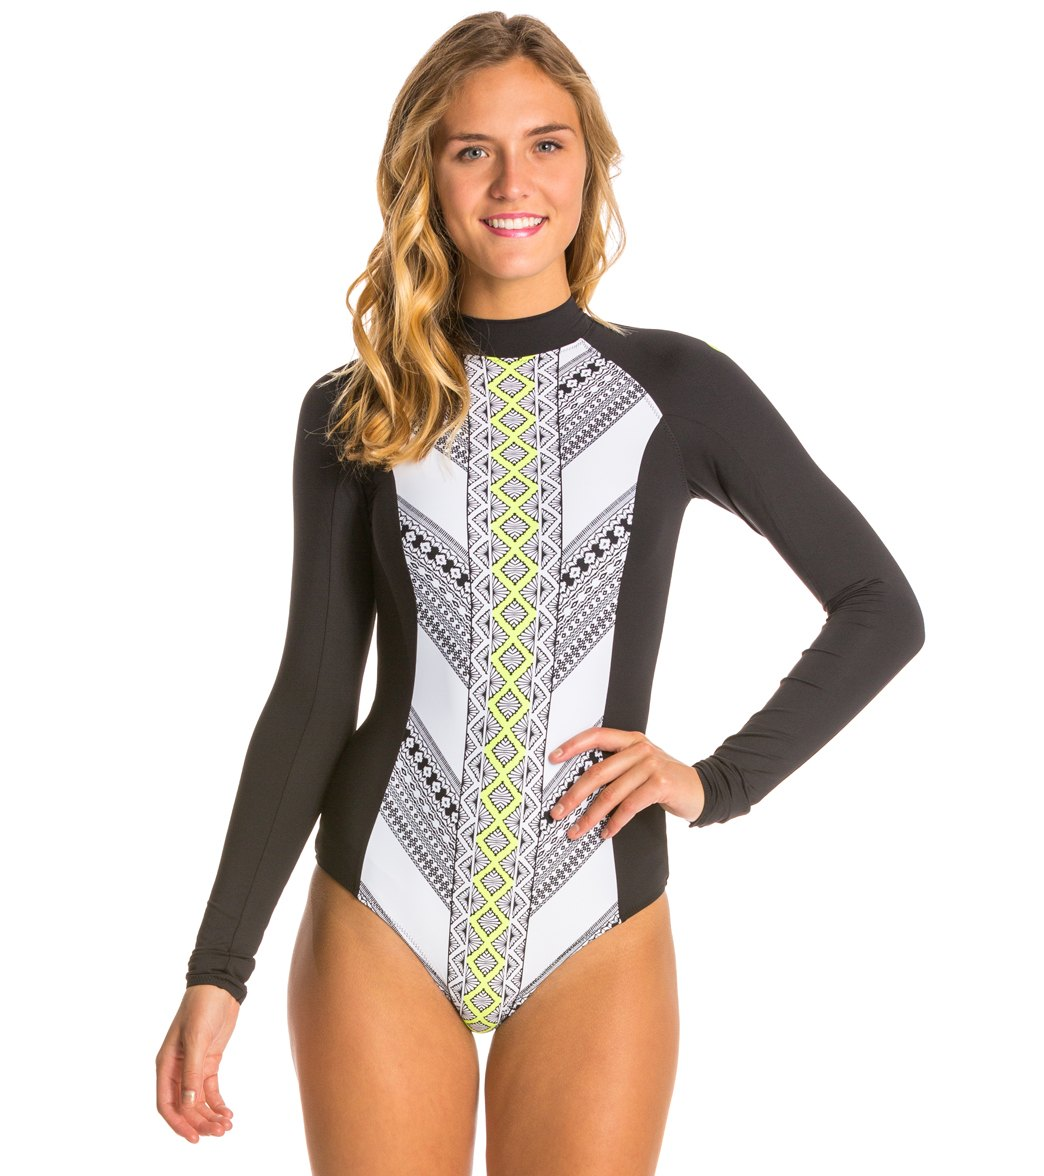 9010ede33b61 Rip Curl Gypsy Road L S Surf Suit at SwimOutlet.com - Free Shipping